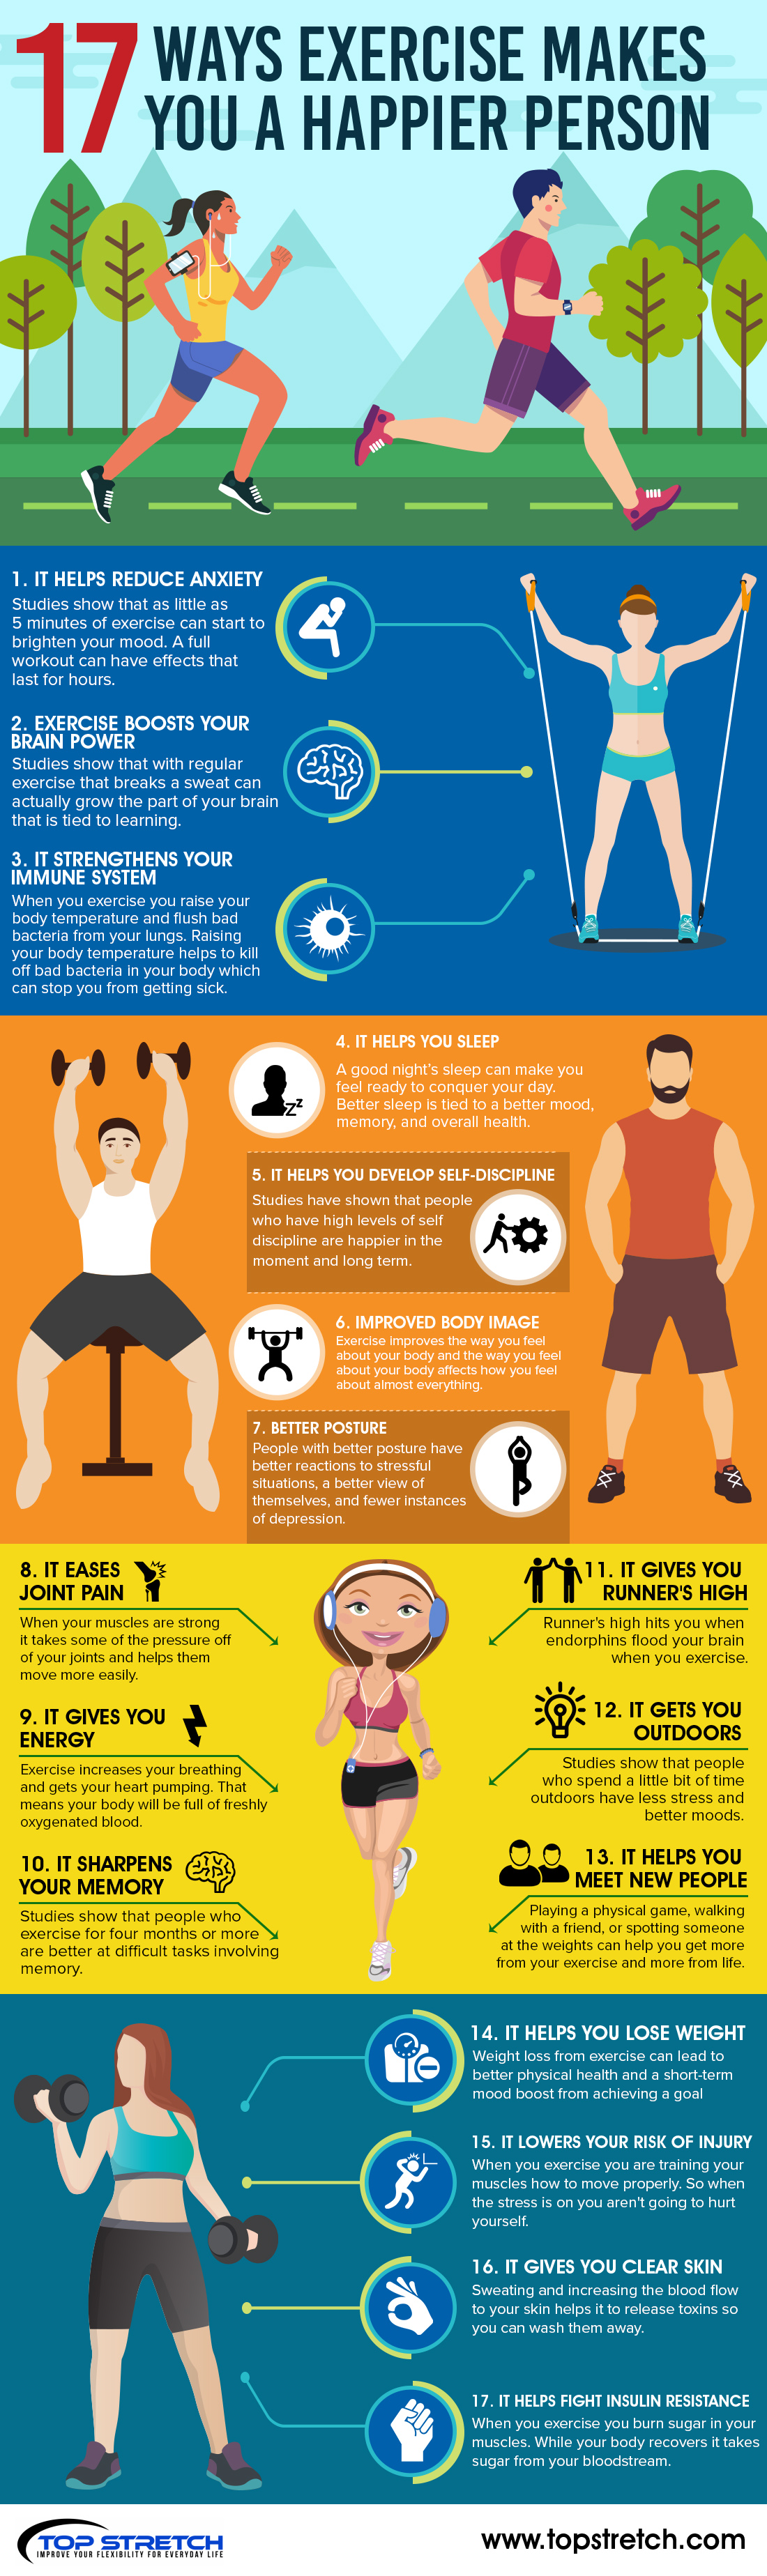 natural anxiety reducer exercise infographic